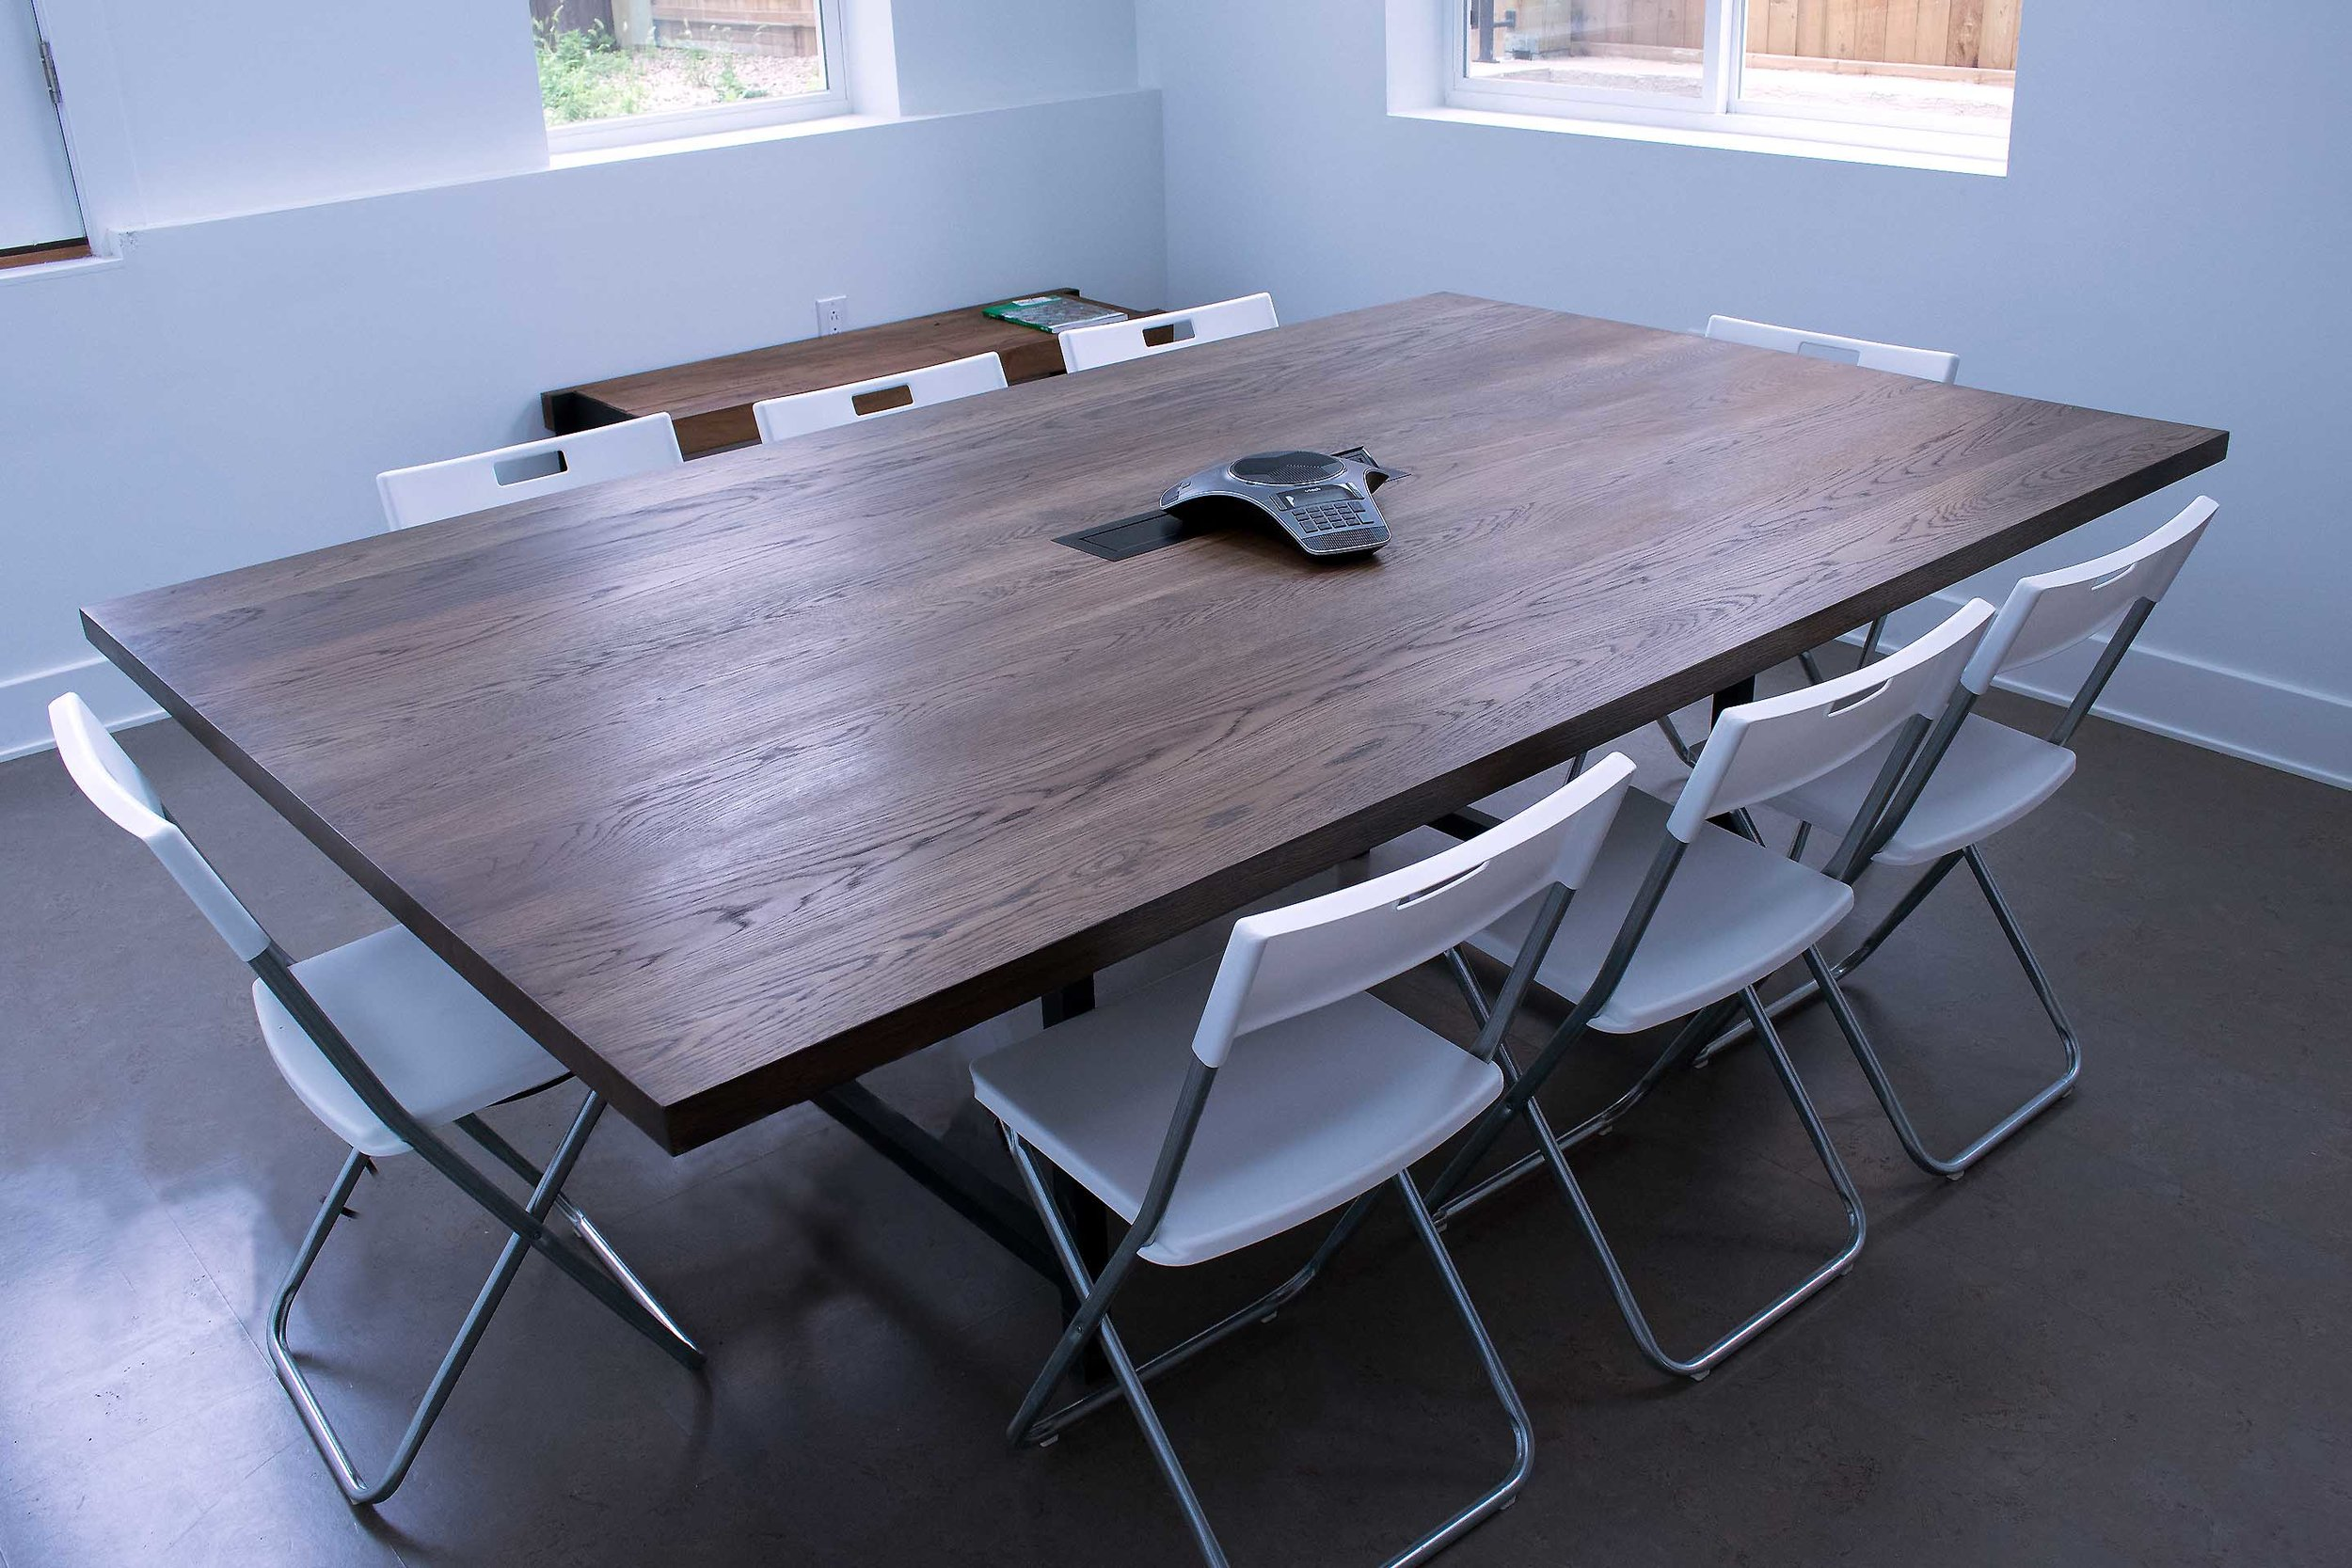 White oak staind conference table.jpg